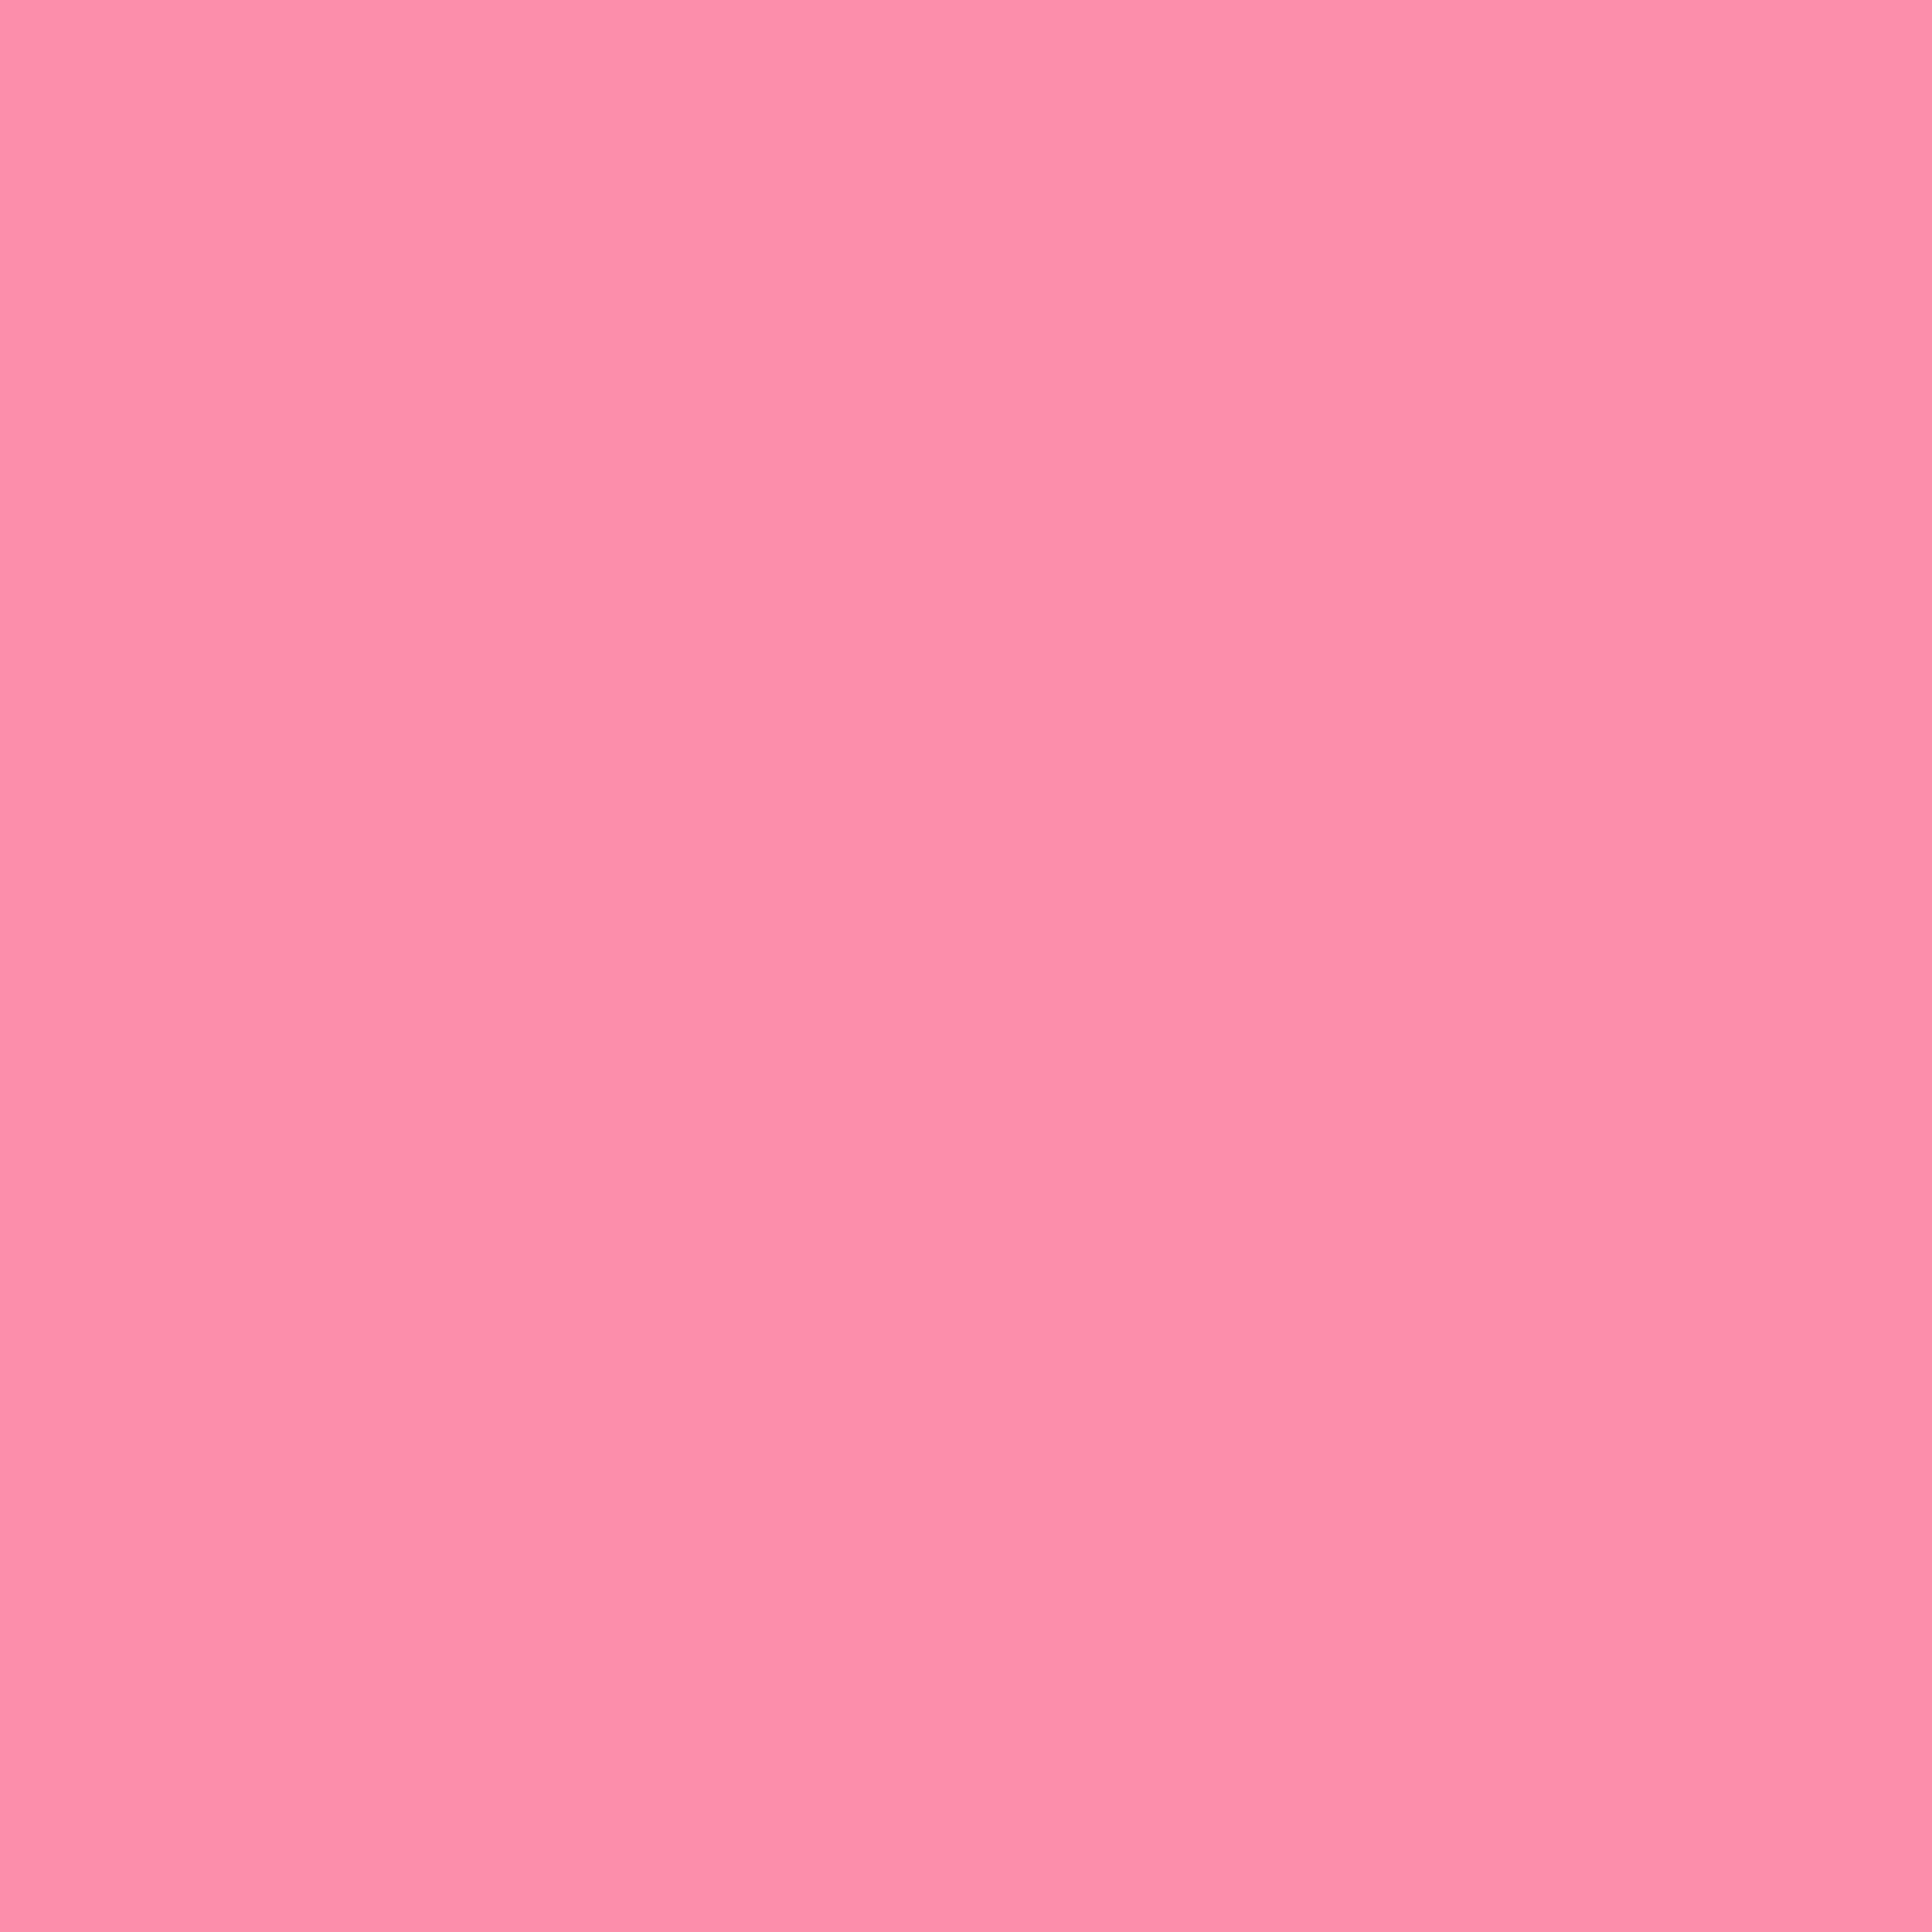 3600x3600 Flamingo Pink Solid Color Background